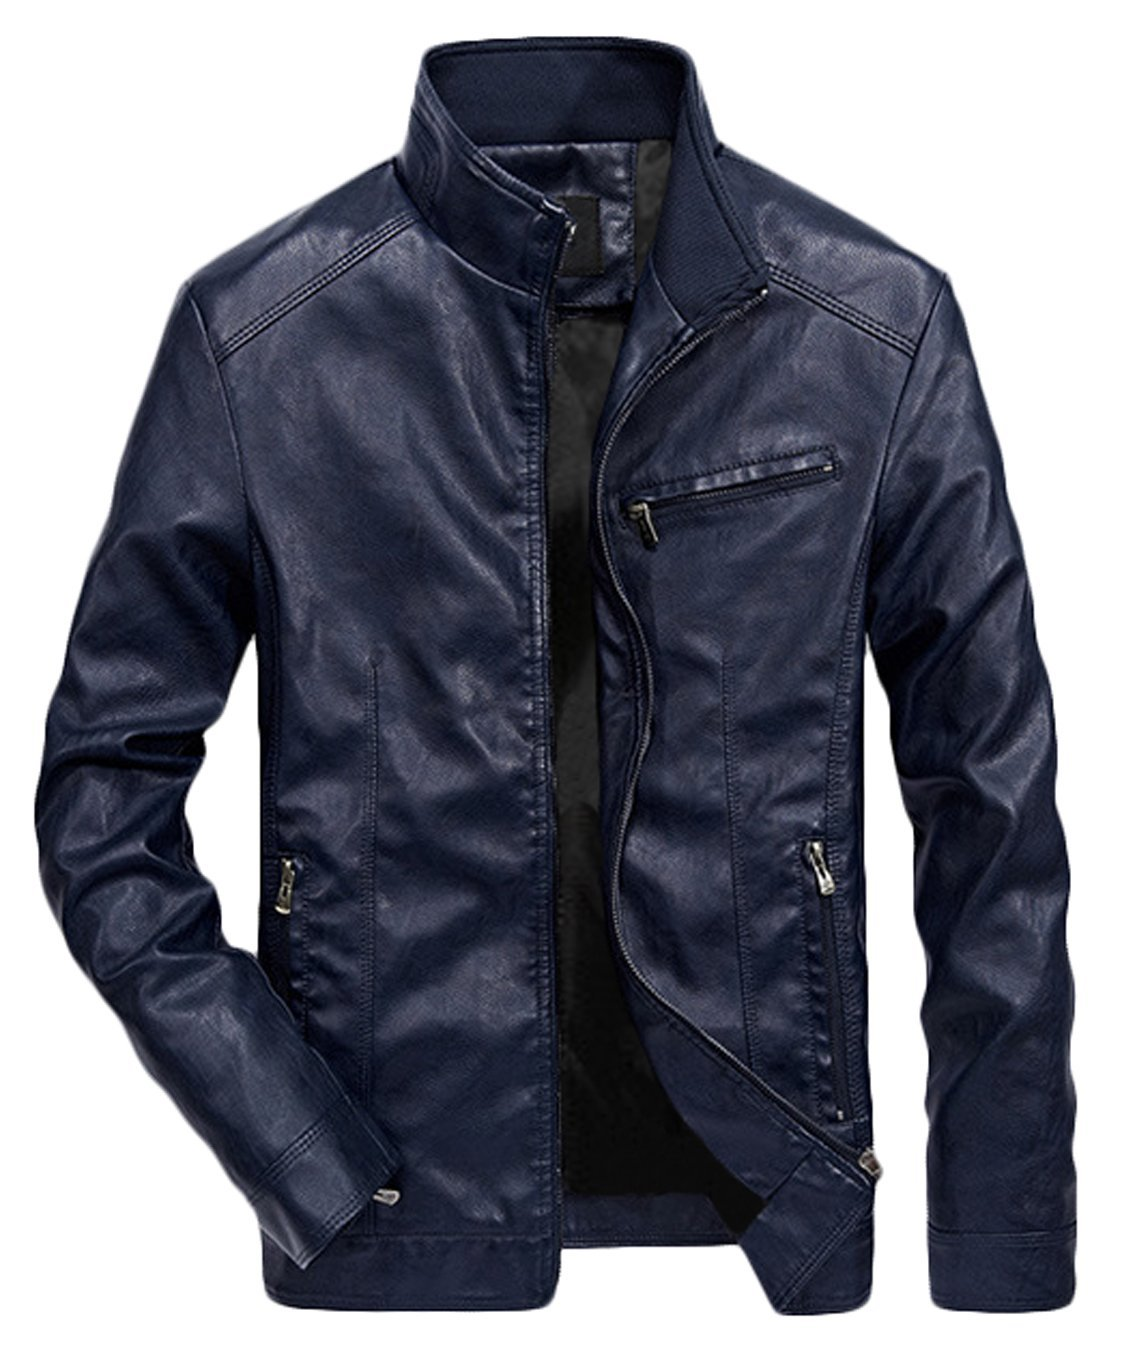 WULFUL Men's Stand Collar Leather Jacket Motorcyle Lightweight Faux Leather Outwear Navy-XL by WULFUL